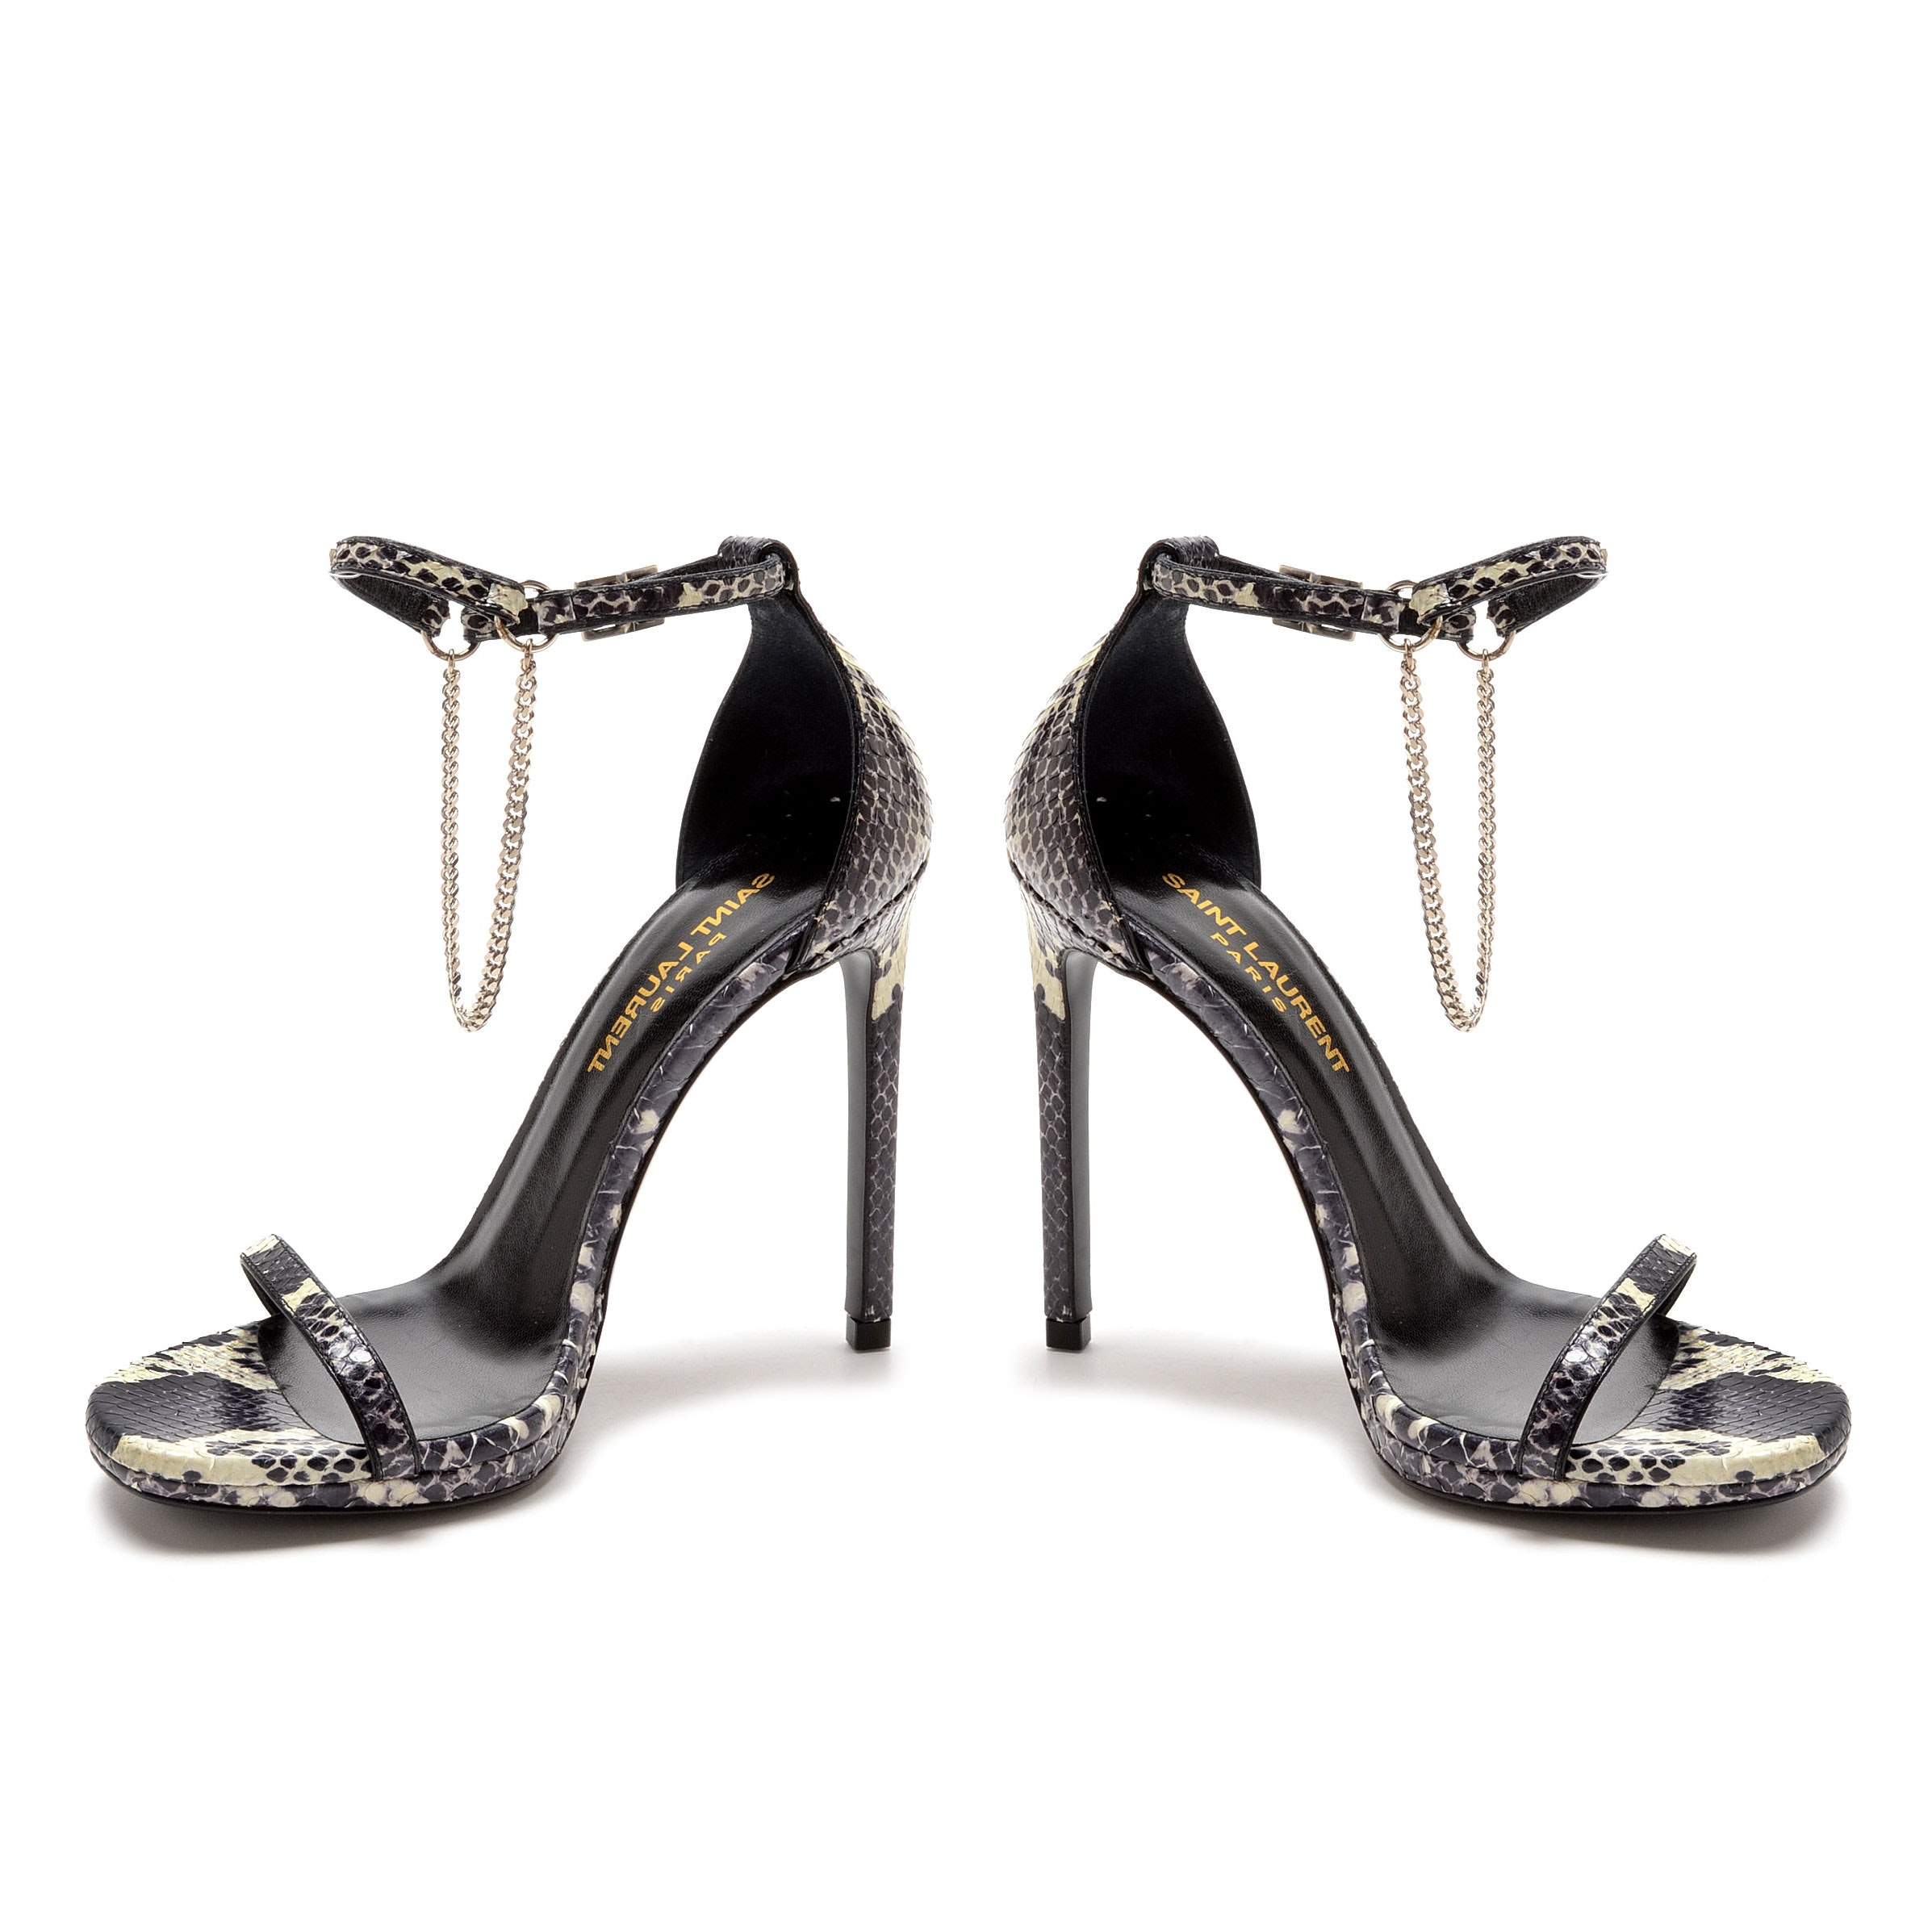 Saint Laurent of Paris Snakeskin Embossed Leather Open Toe Sling Back Dress Sandals with Chain Strap